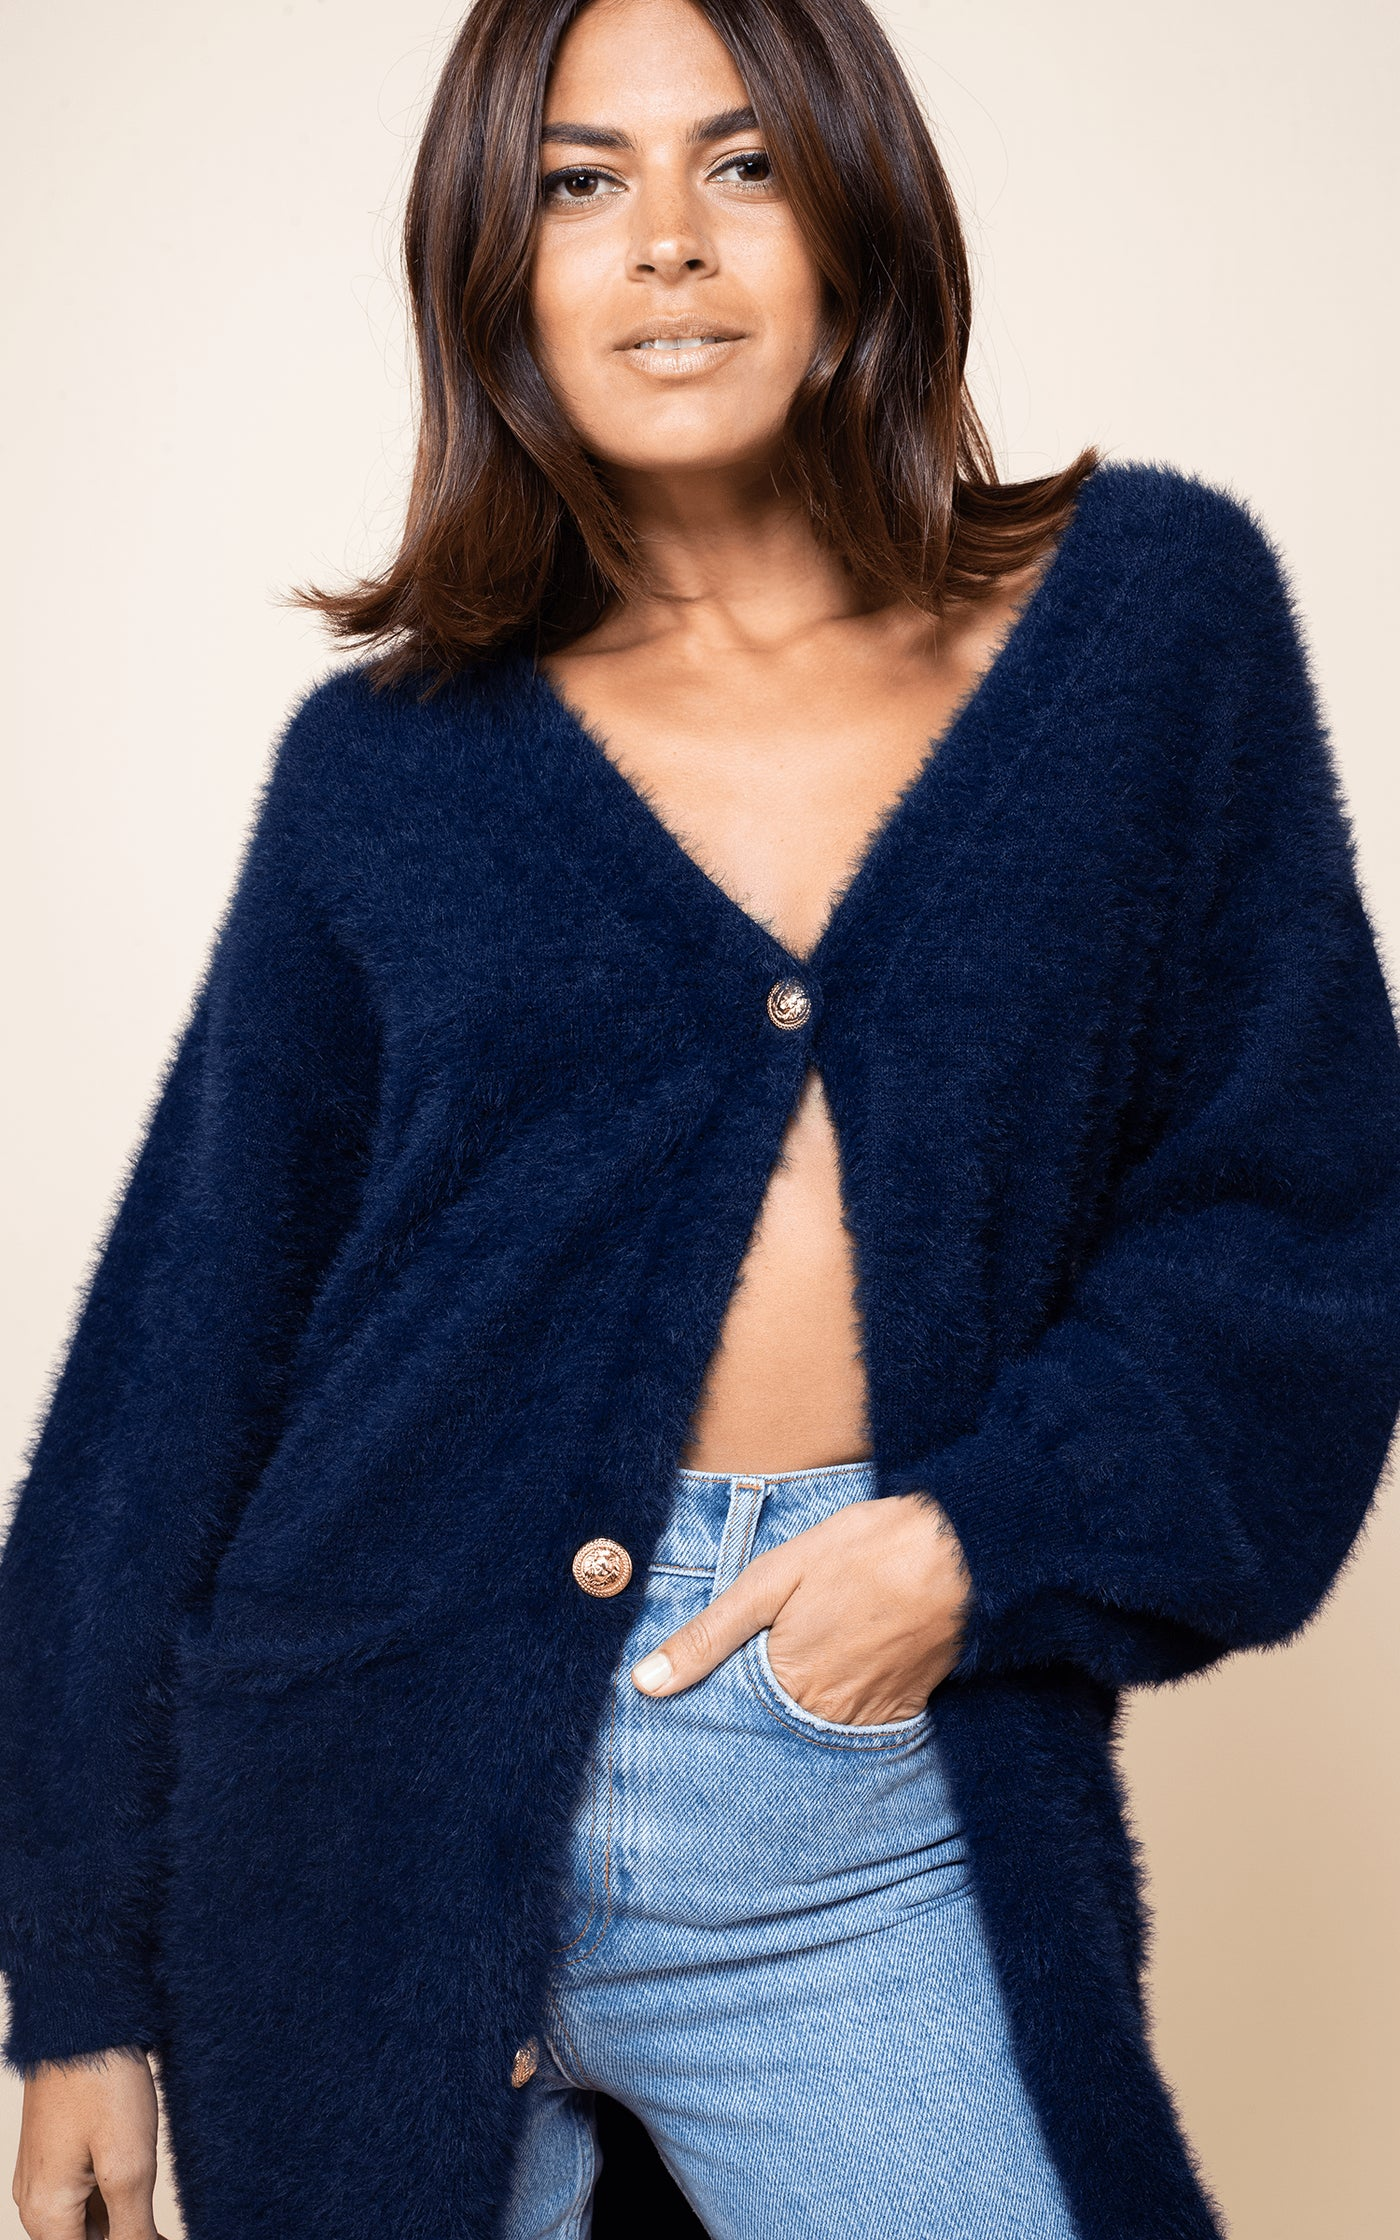 Close-up of Dancing Leopard wearing Taylor Cardigan in Navy with jeans